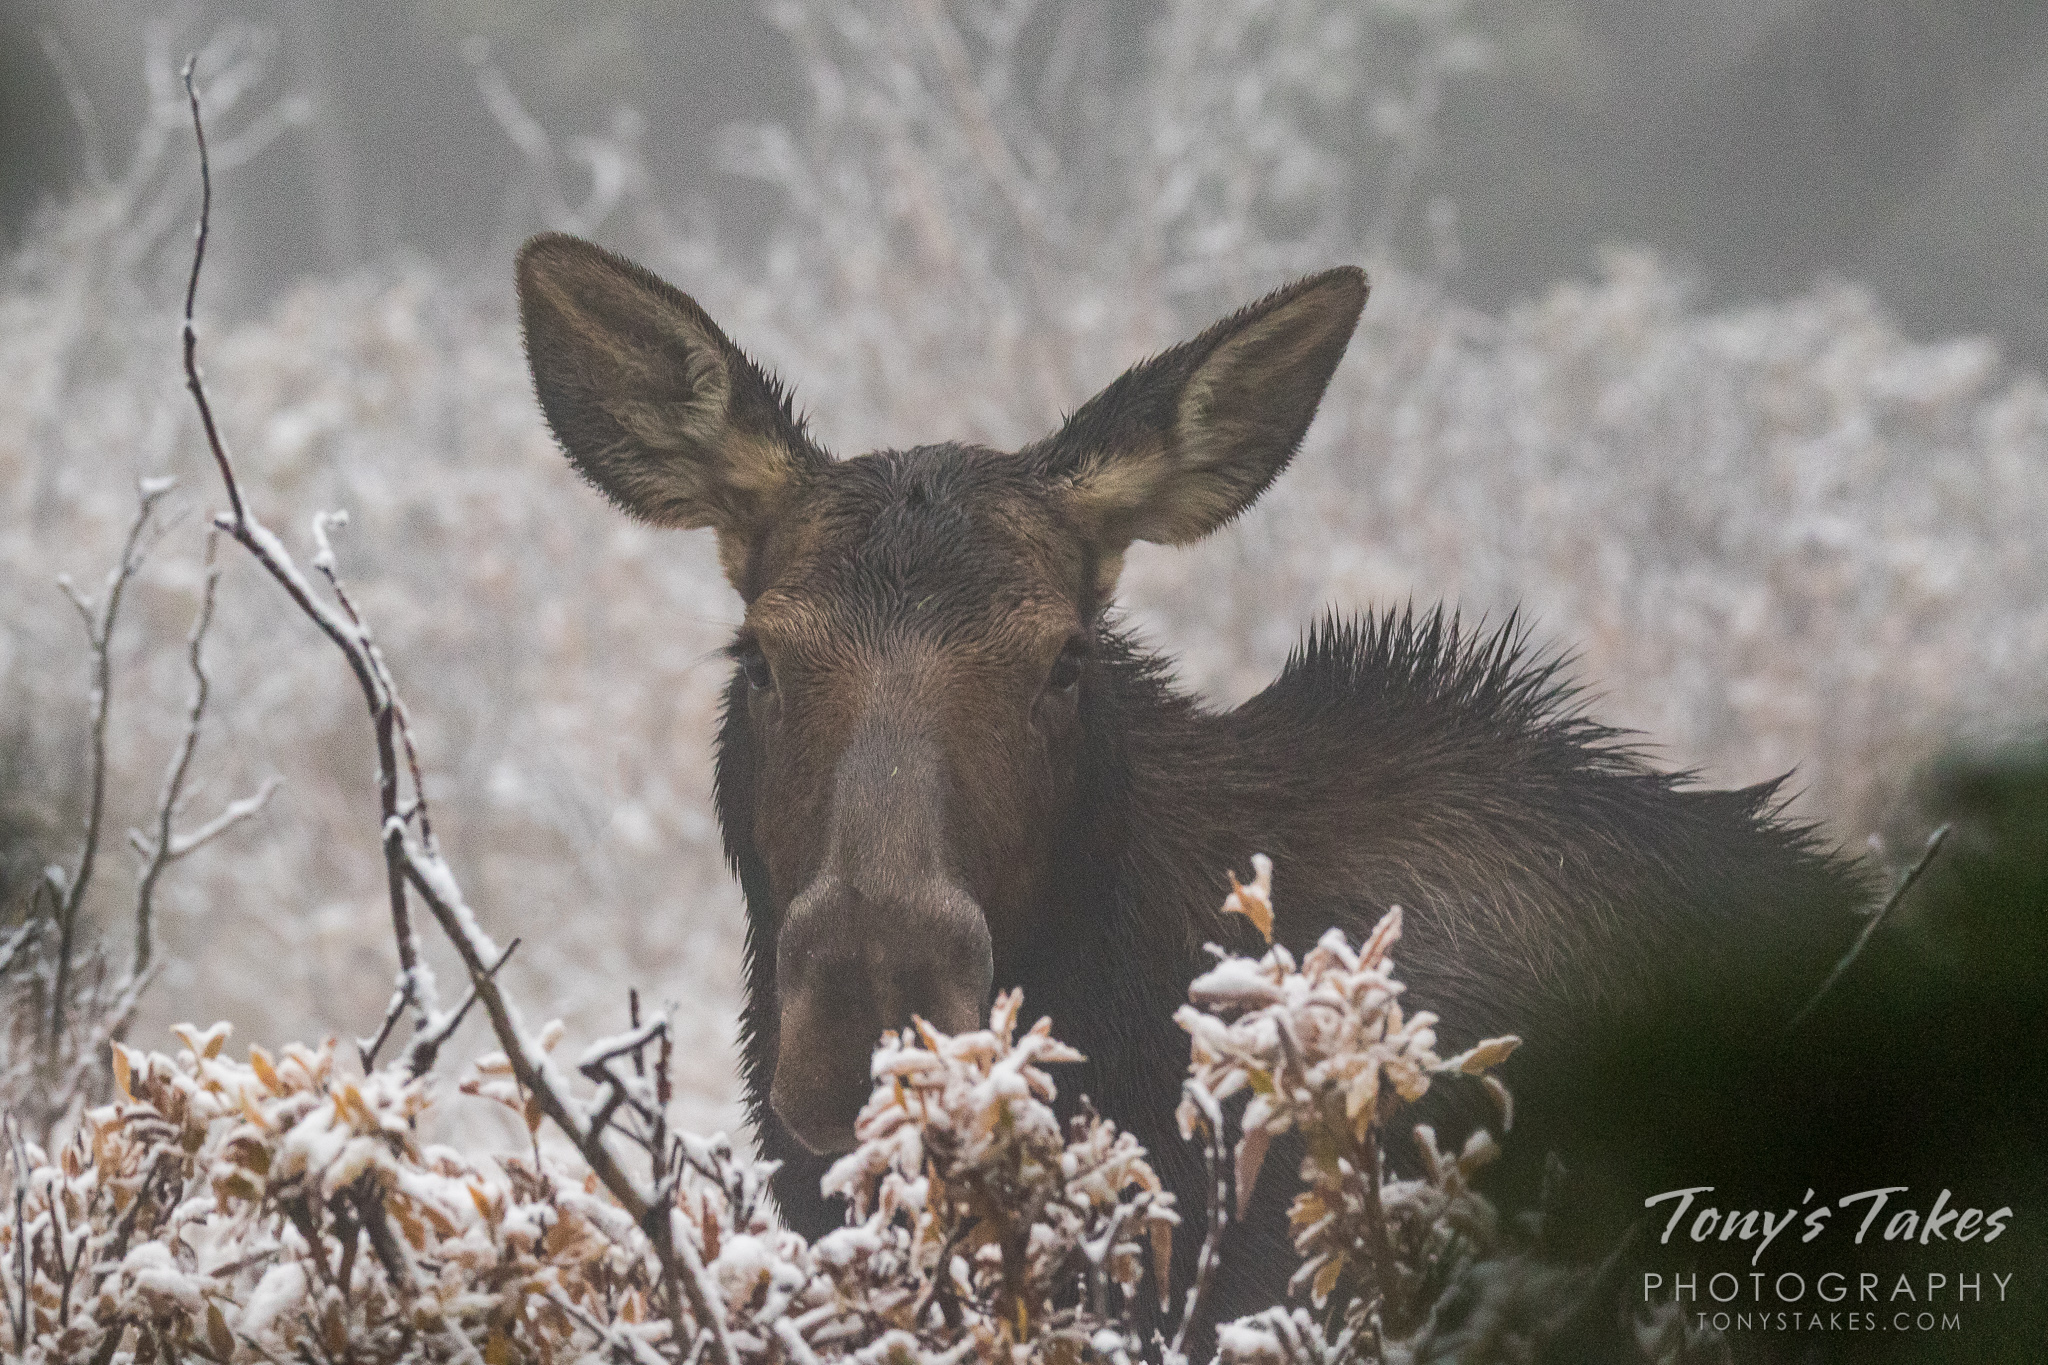 A moose cow weathers a fall snowstorm in Colorado's high country. (© Tony's Takes)